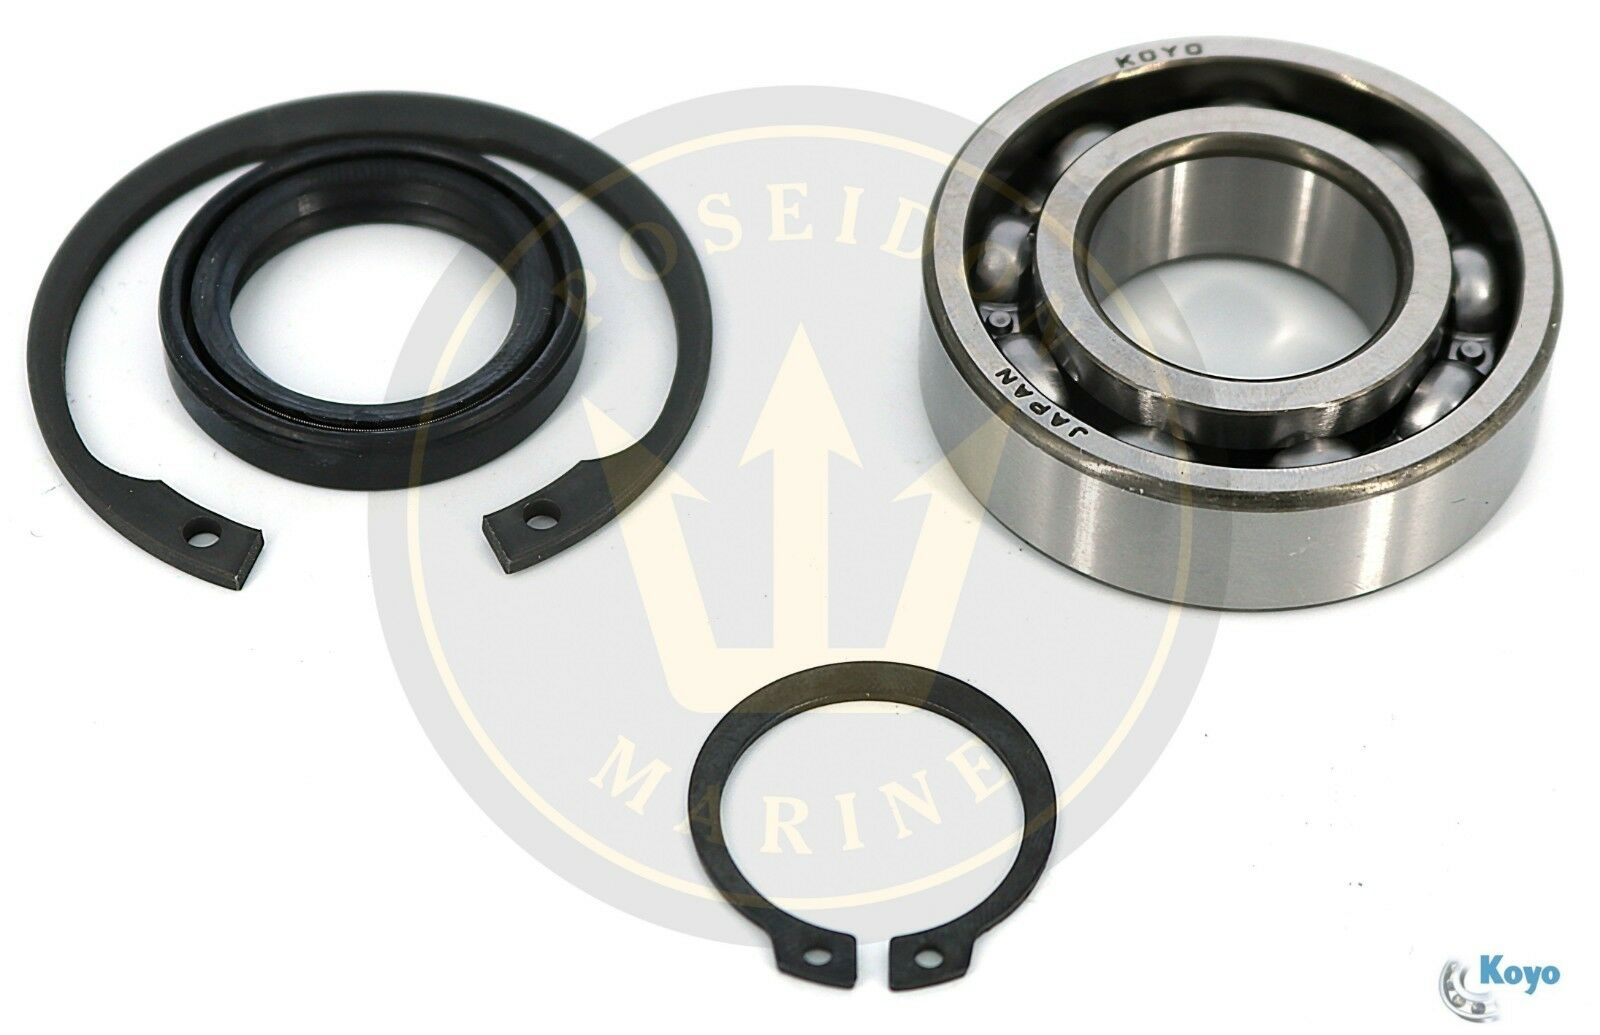 Flywheel Repair kit for Volvo Penta RO: 11012 958973 B16